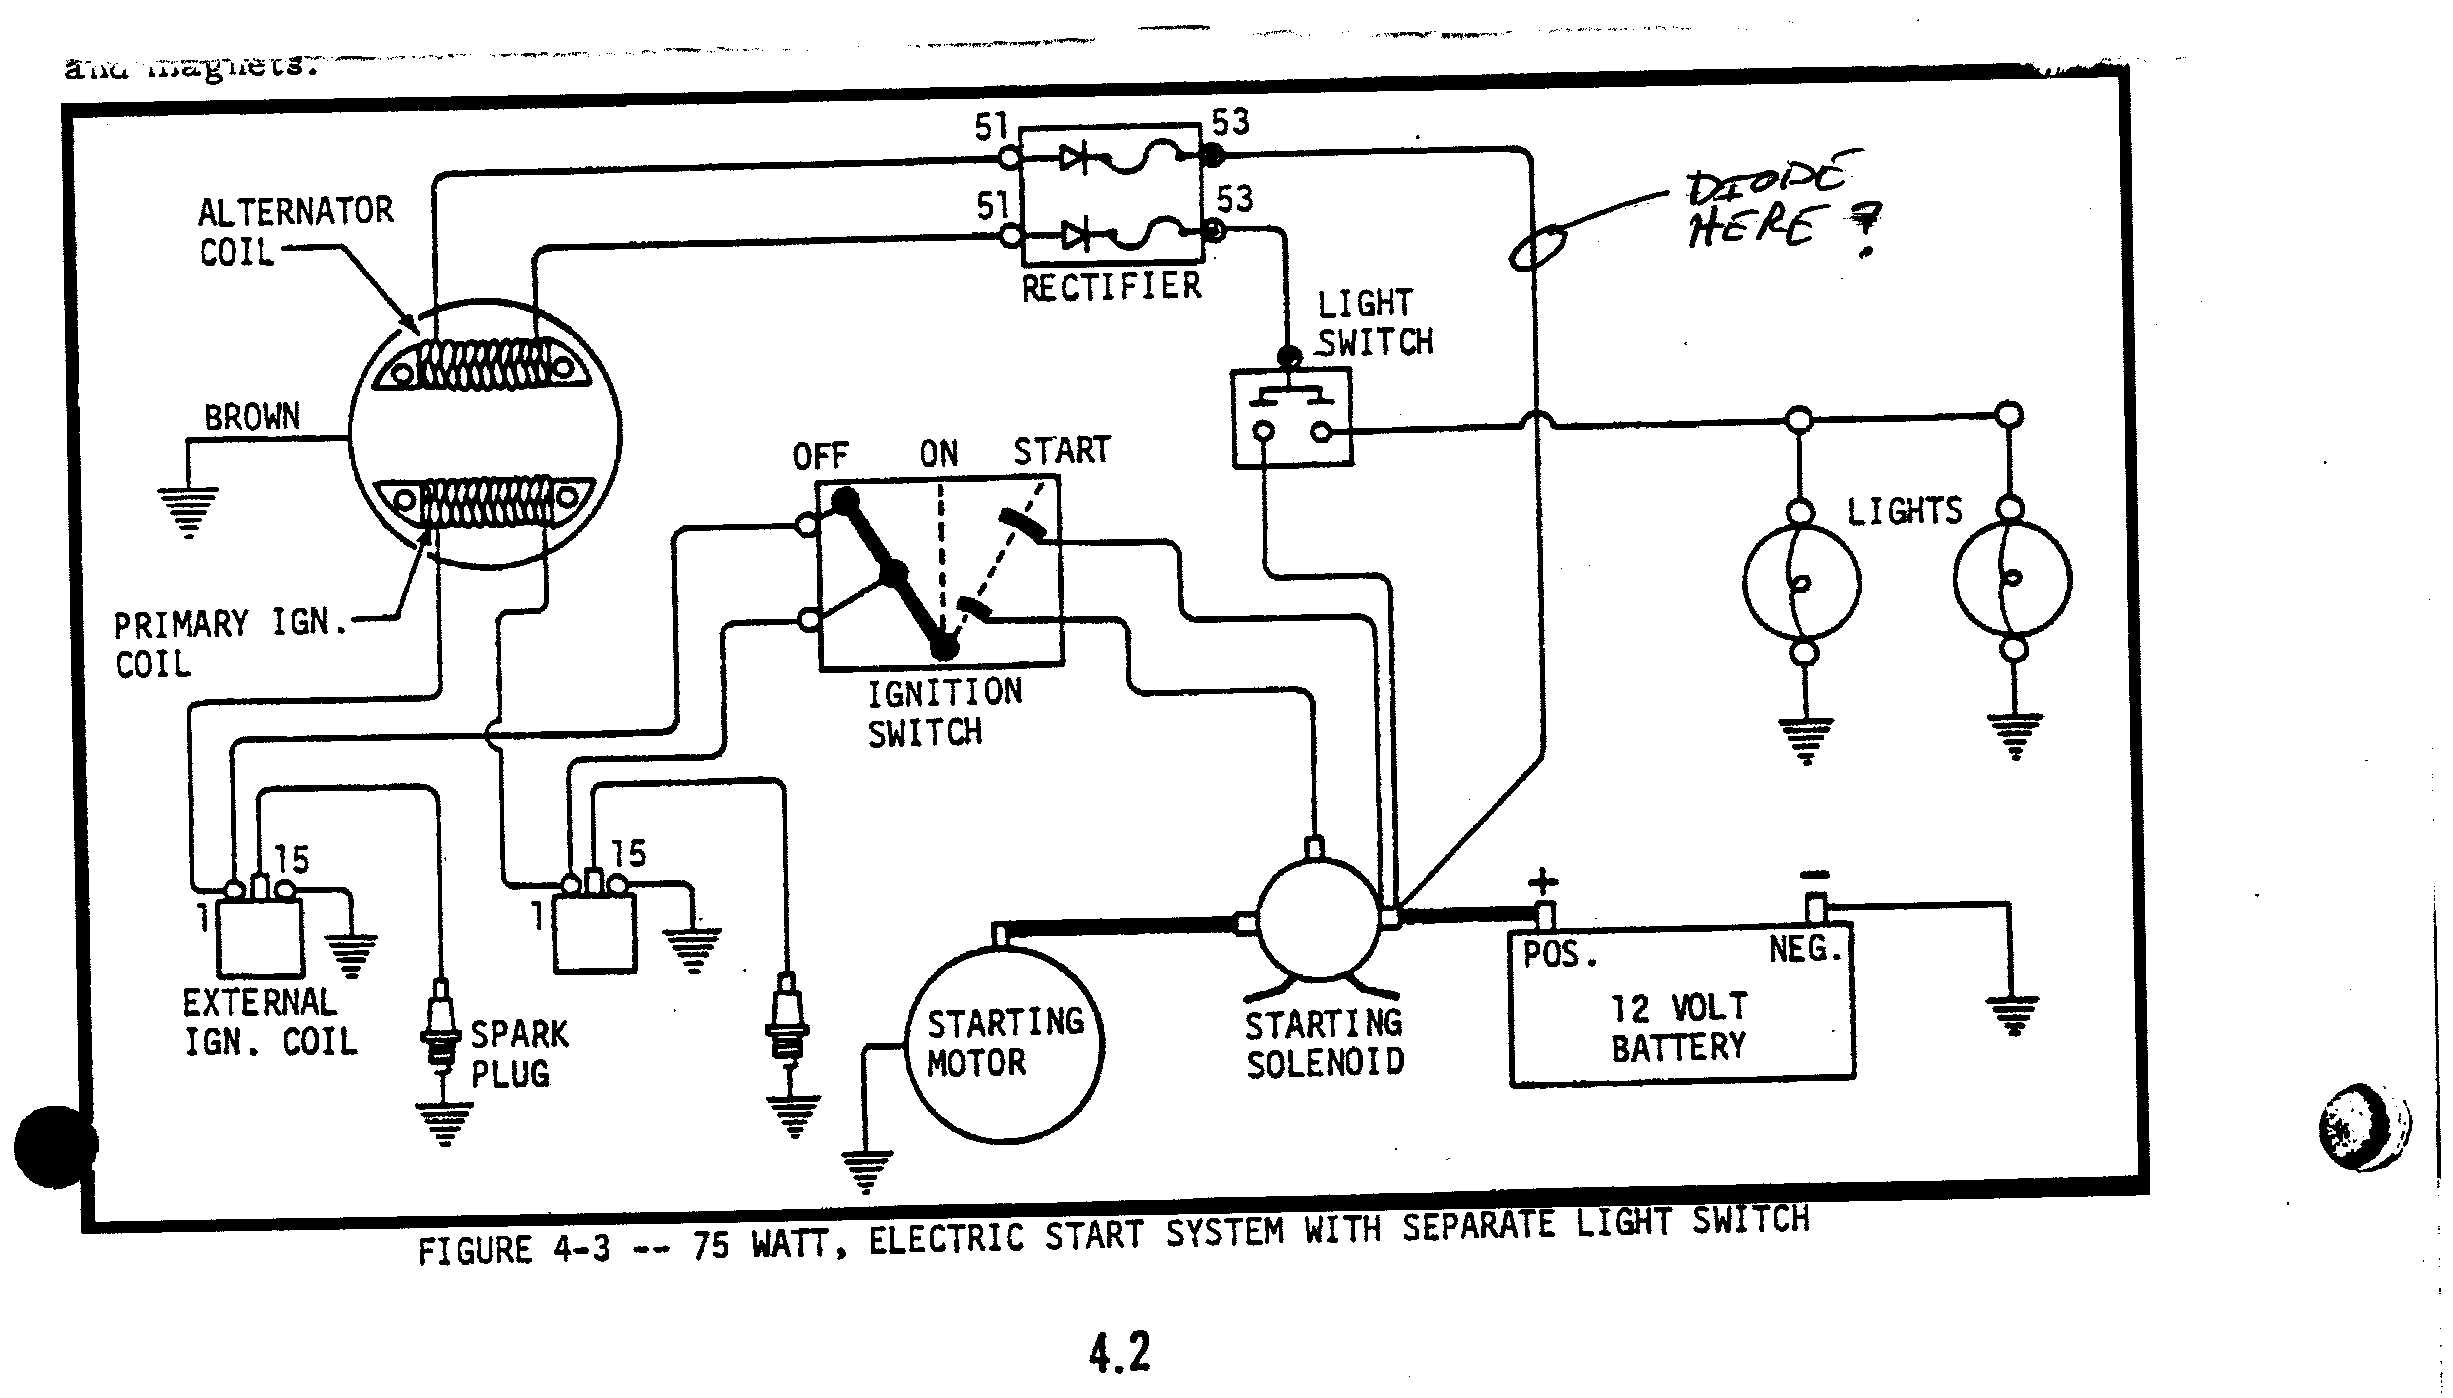 arctic cat 250 wiring schematic added elect start... not good! - page 3 - arcticchat.com ... #5